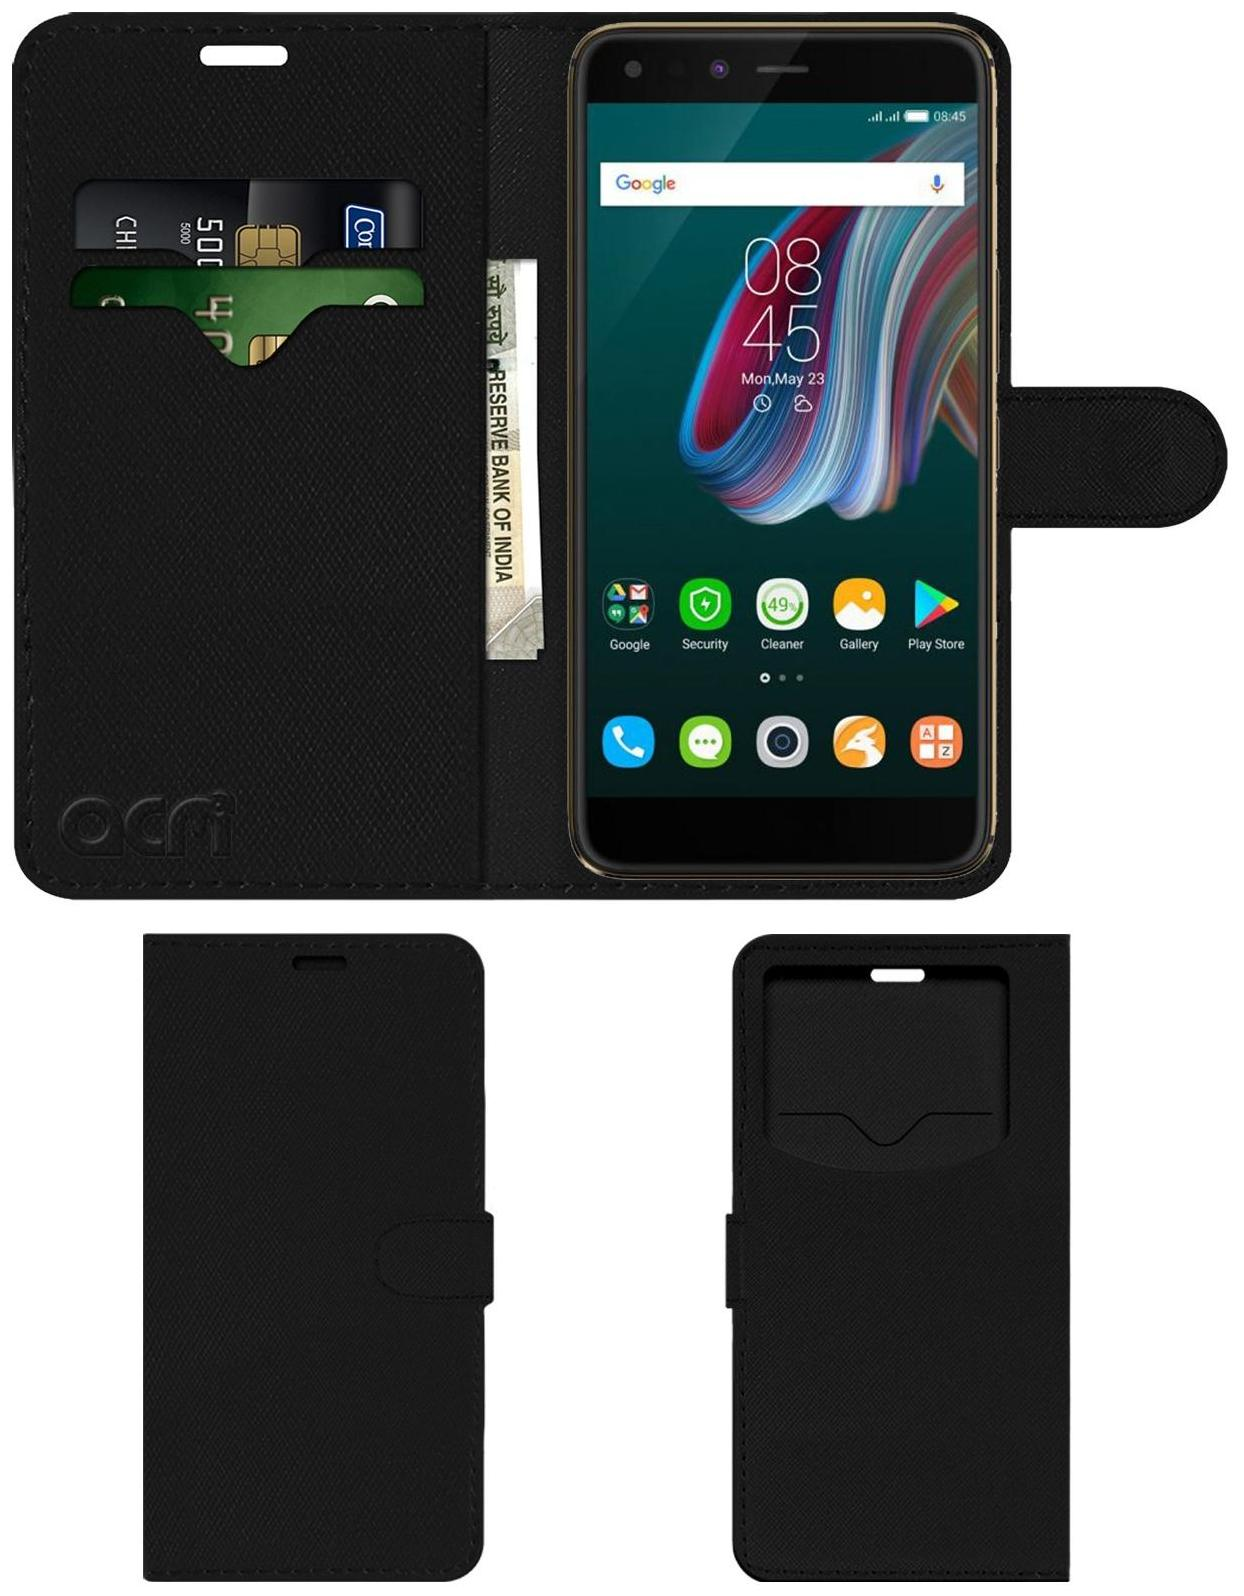 Acm Leather Window Flip Wallet Front   Back Case for Infinix Zero5 Pro Mobile Cover Black by Accessories Masters